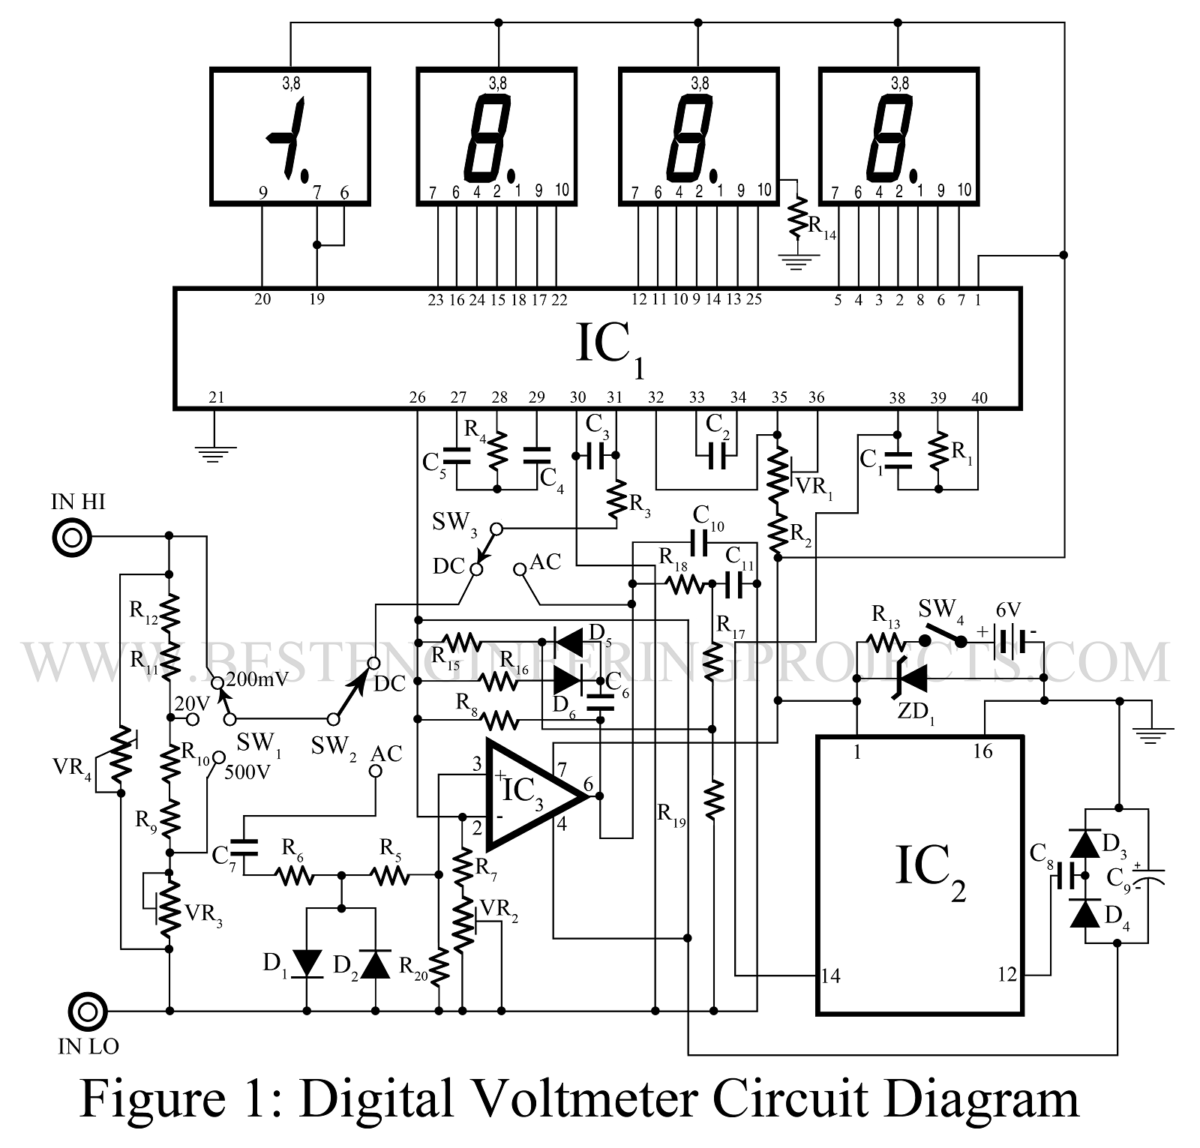 digital meter wiring diagram 2002 mitsubishi lancer stereo voltmeter dvm circuit using icl 7107